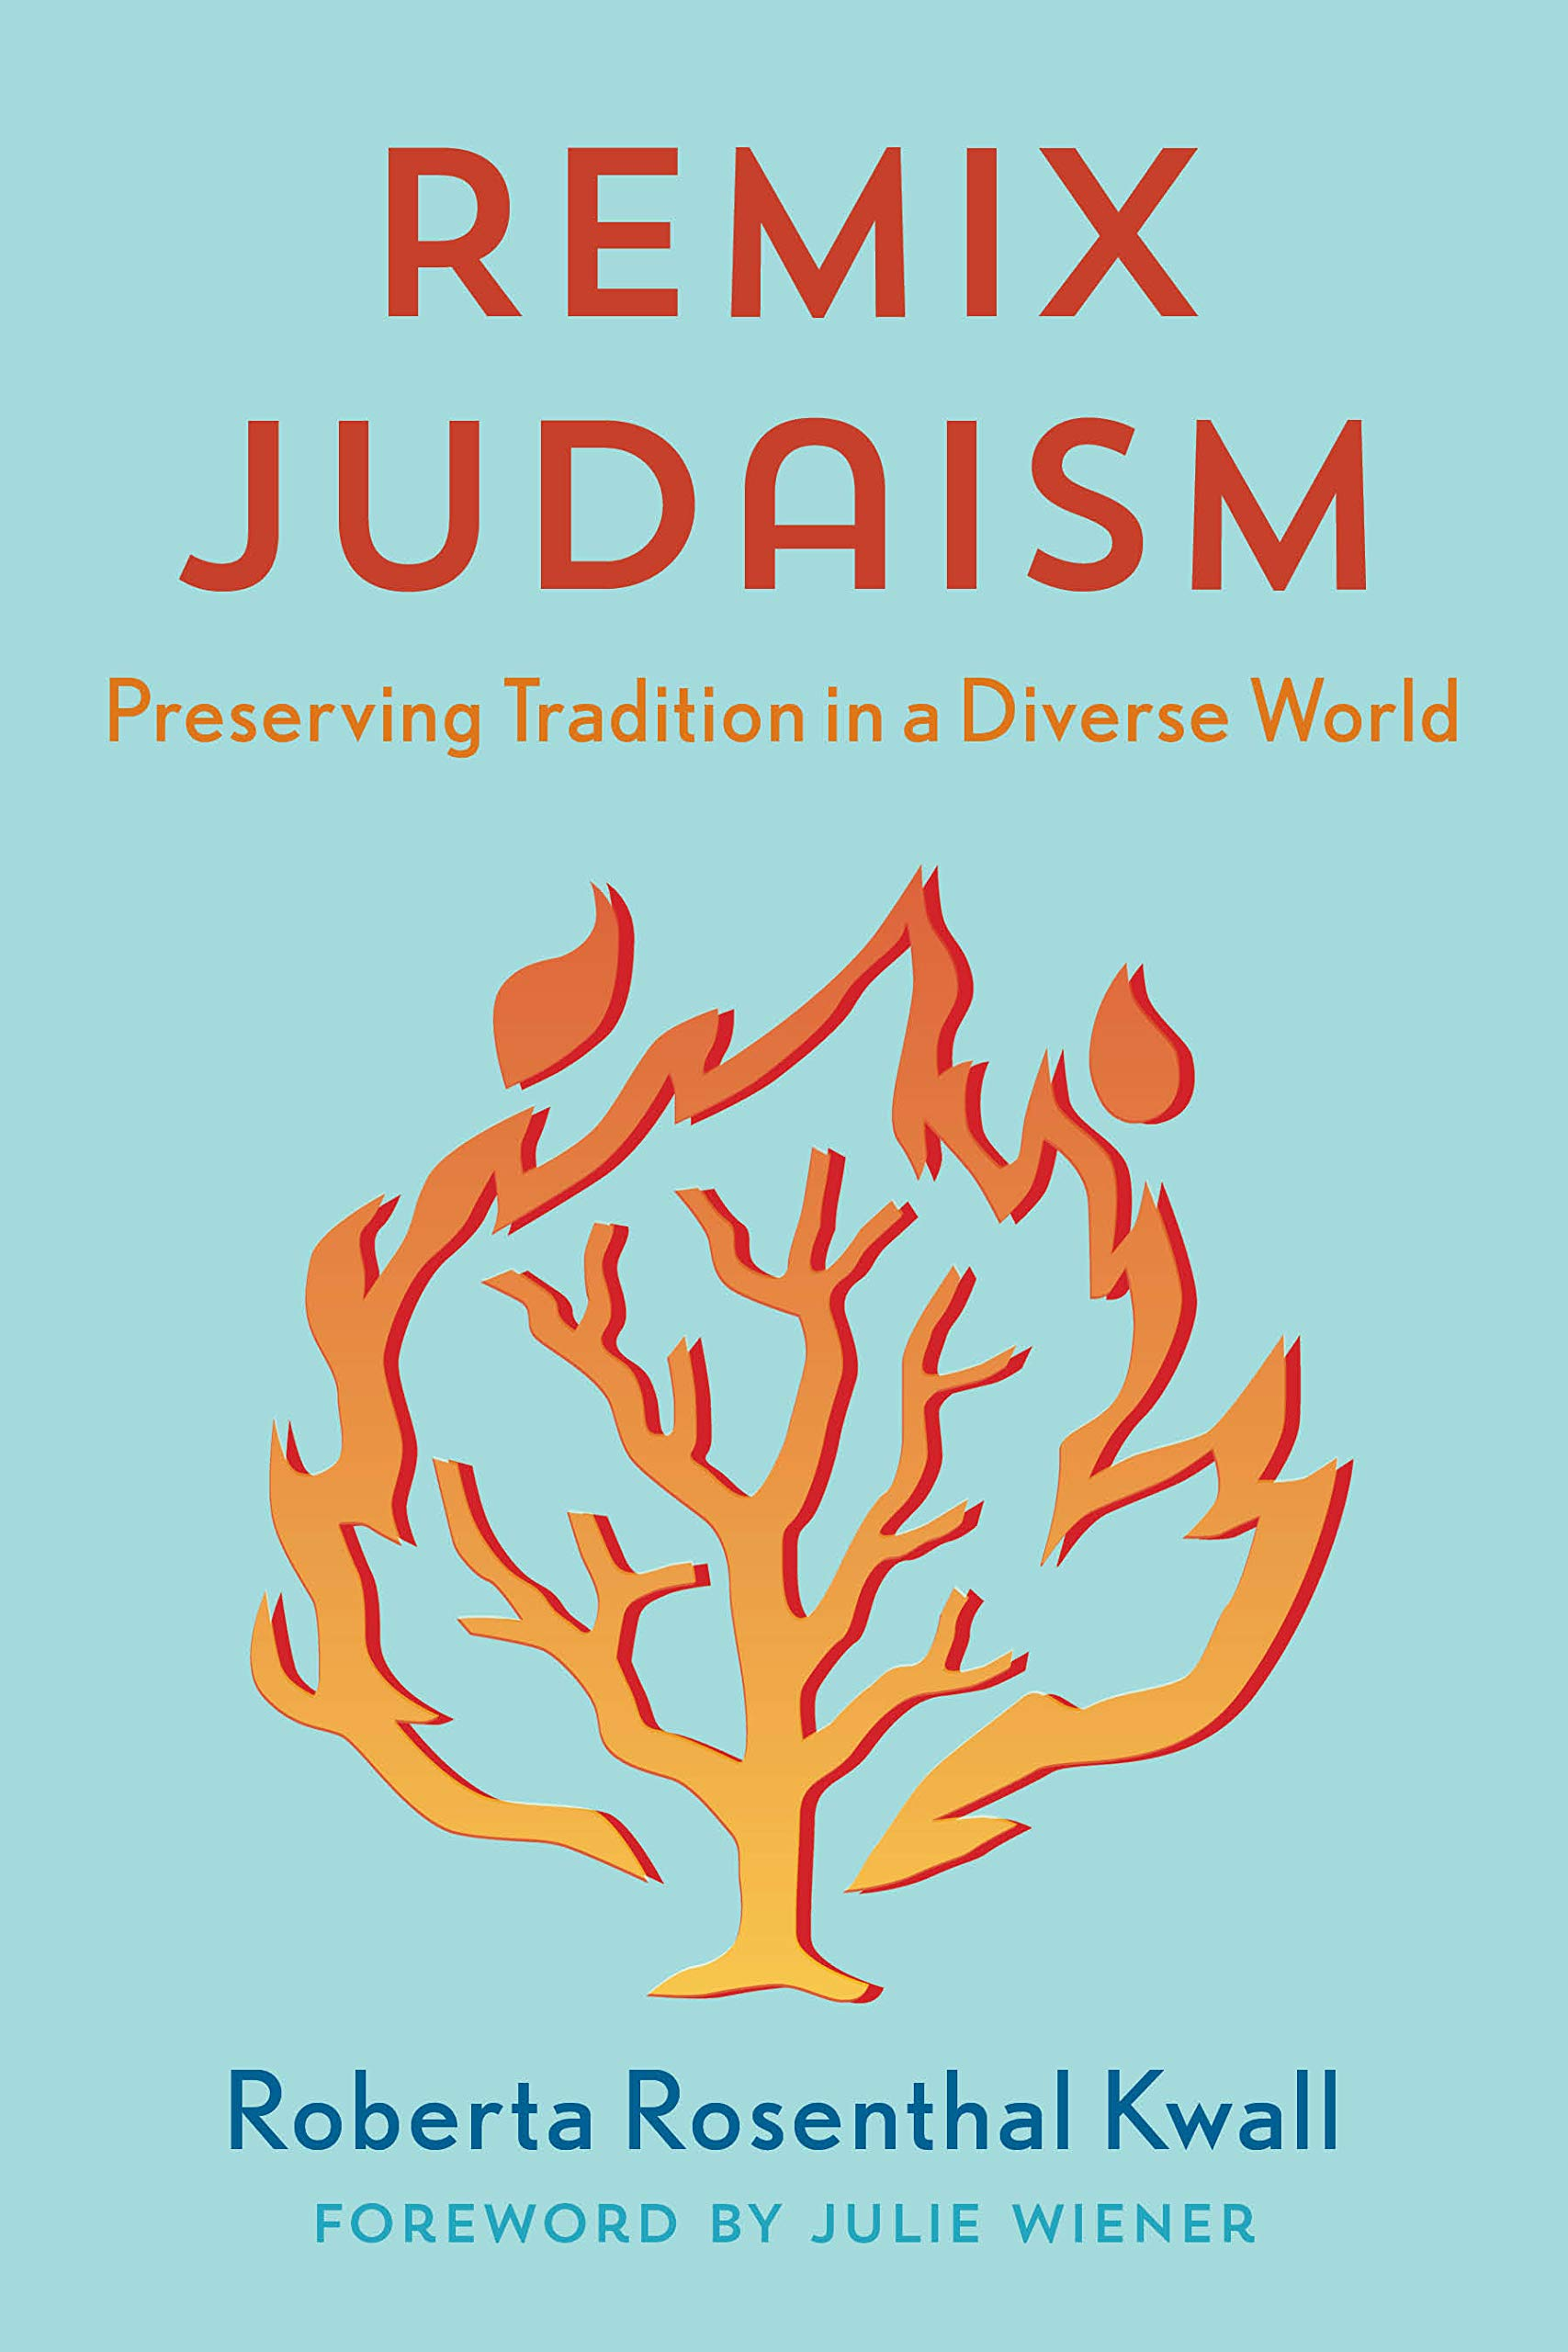 Remix Judaism: Preserving Tradition in a Diverse World by Professor Roberta Rosenthal Kwall